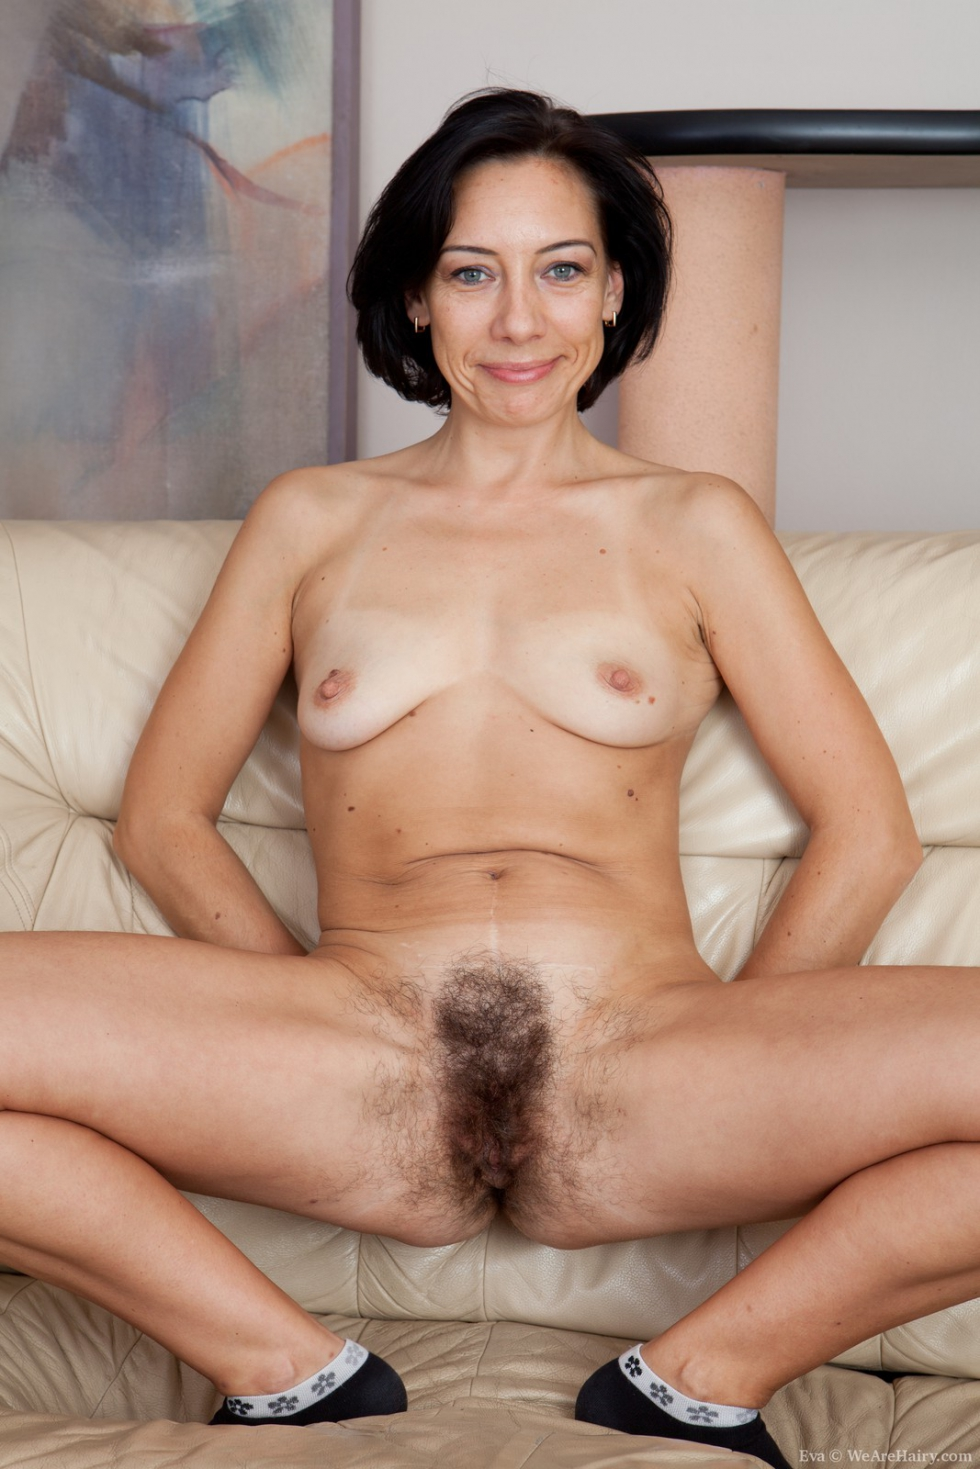 Girl with hairy pussy spread you have